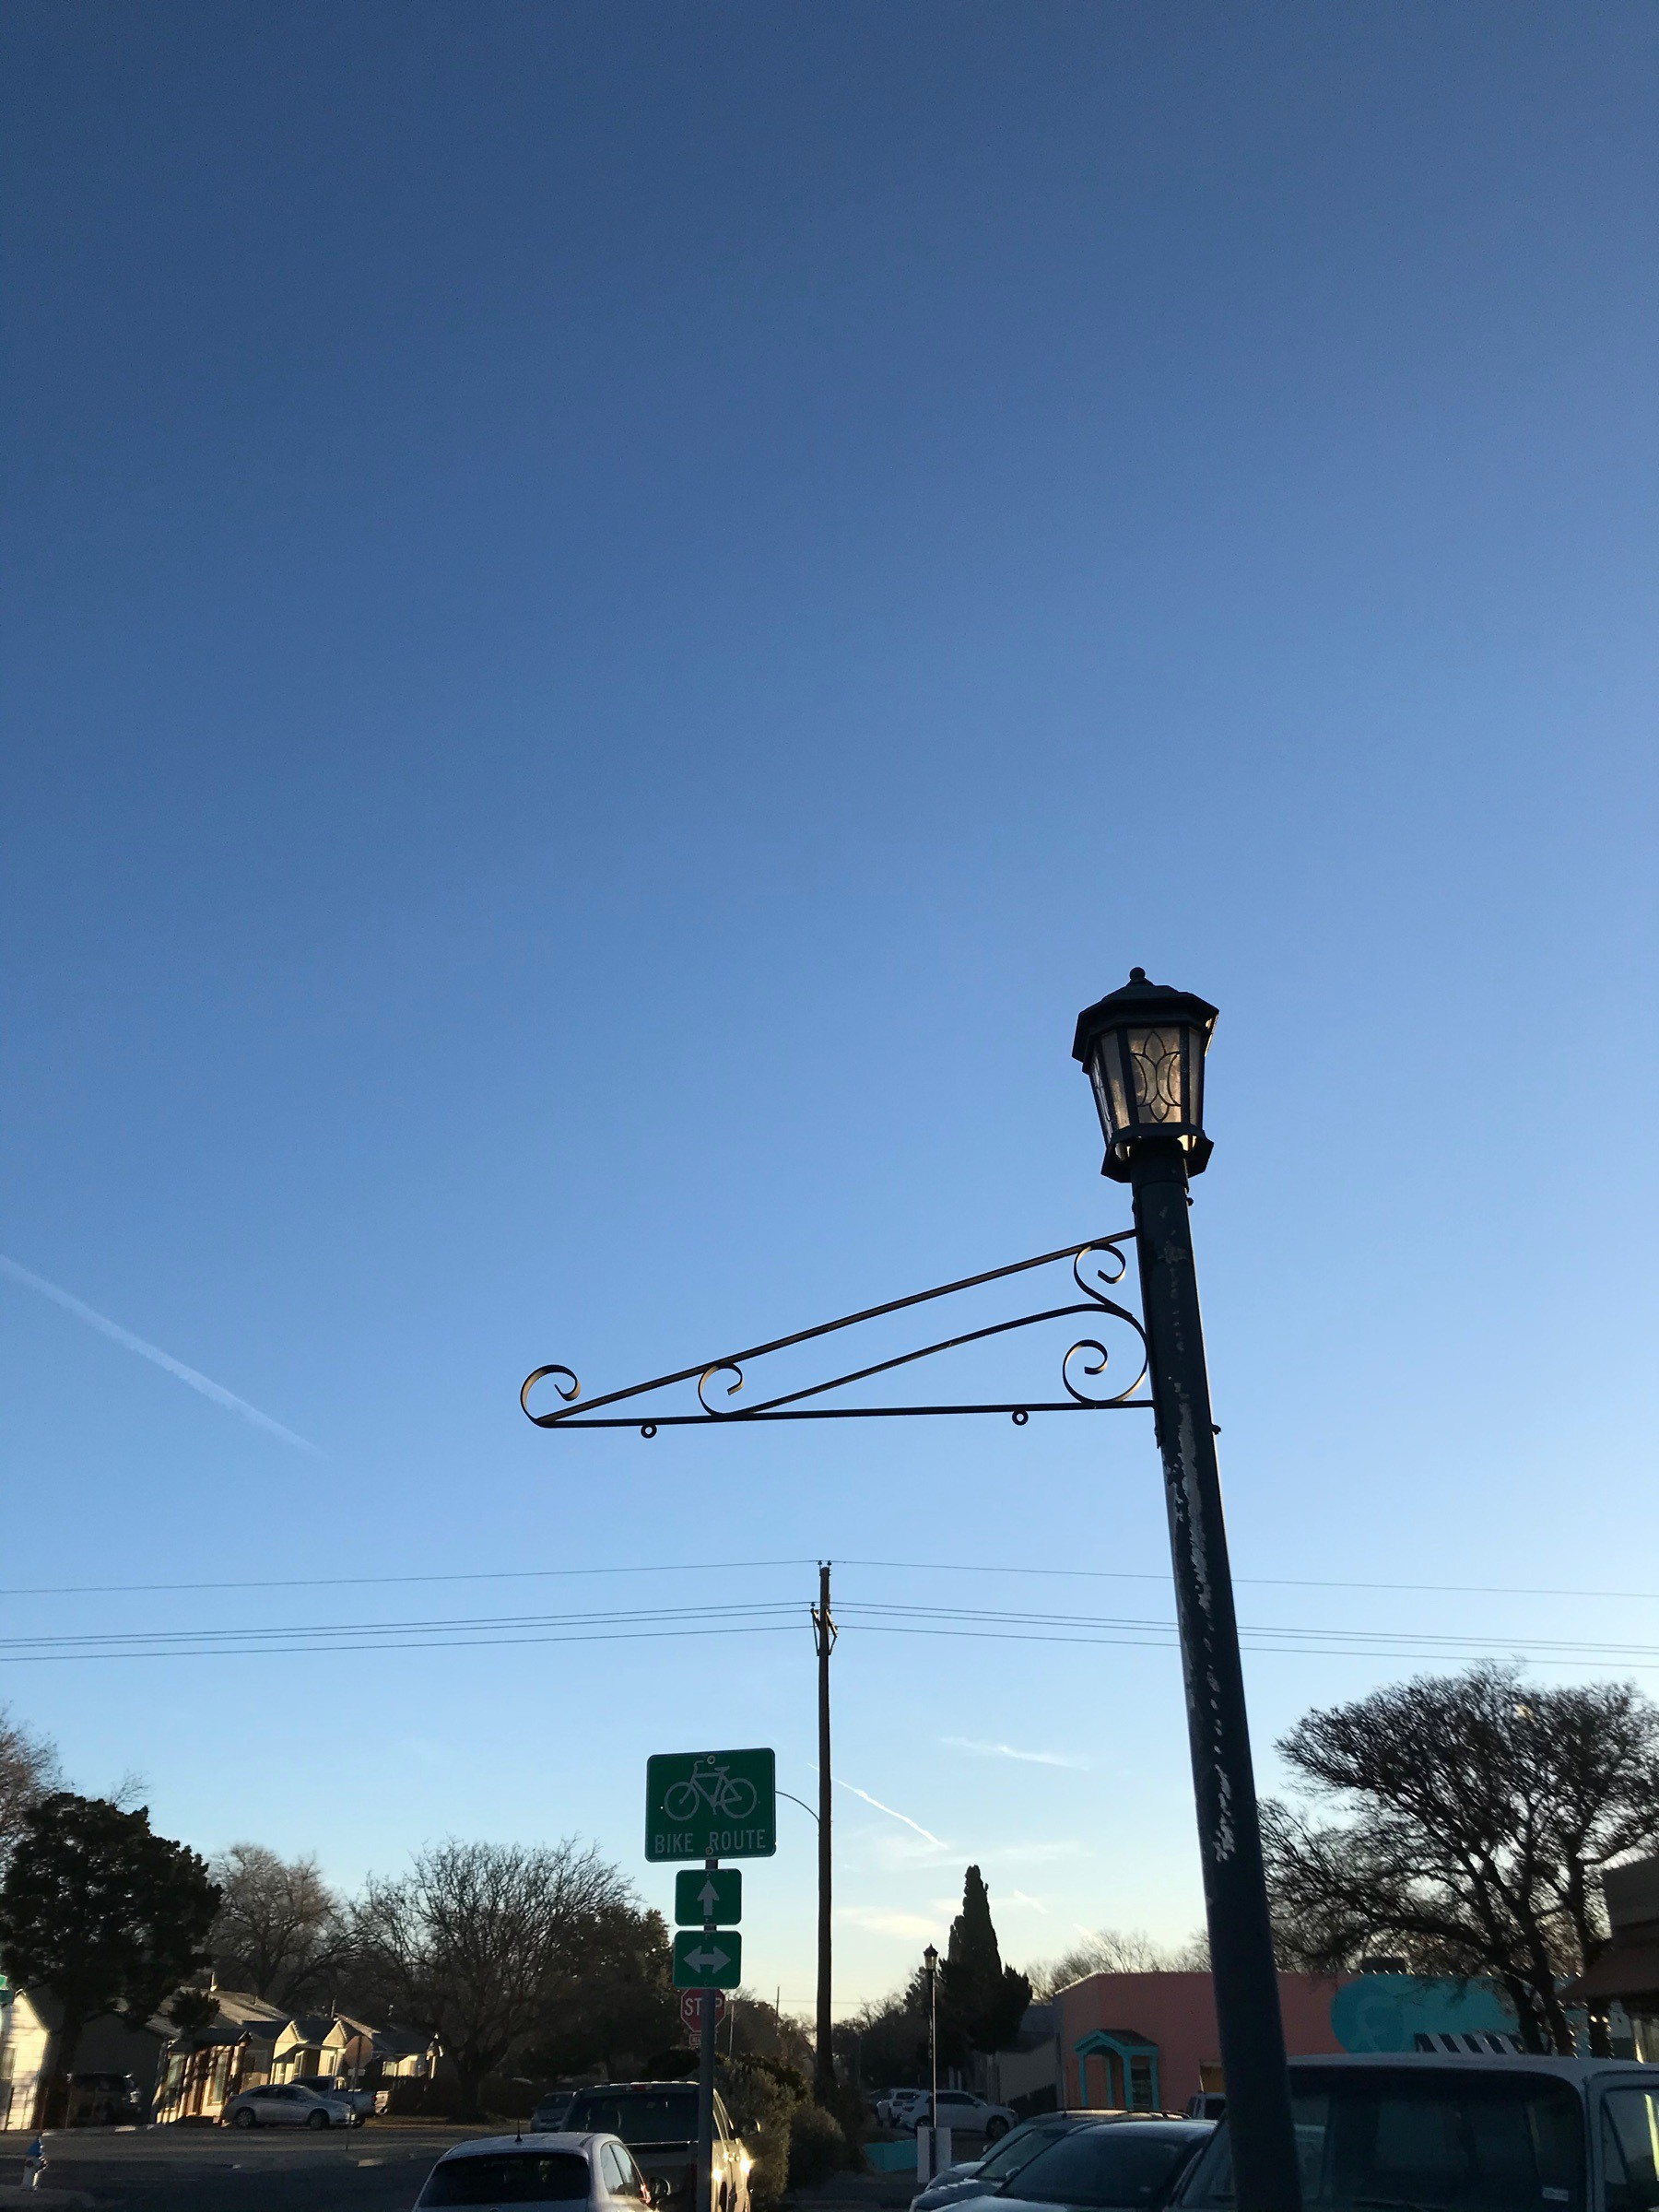 lamp post, power line, and contrail silhouetted against a brilliantly blue sky